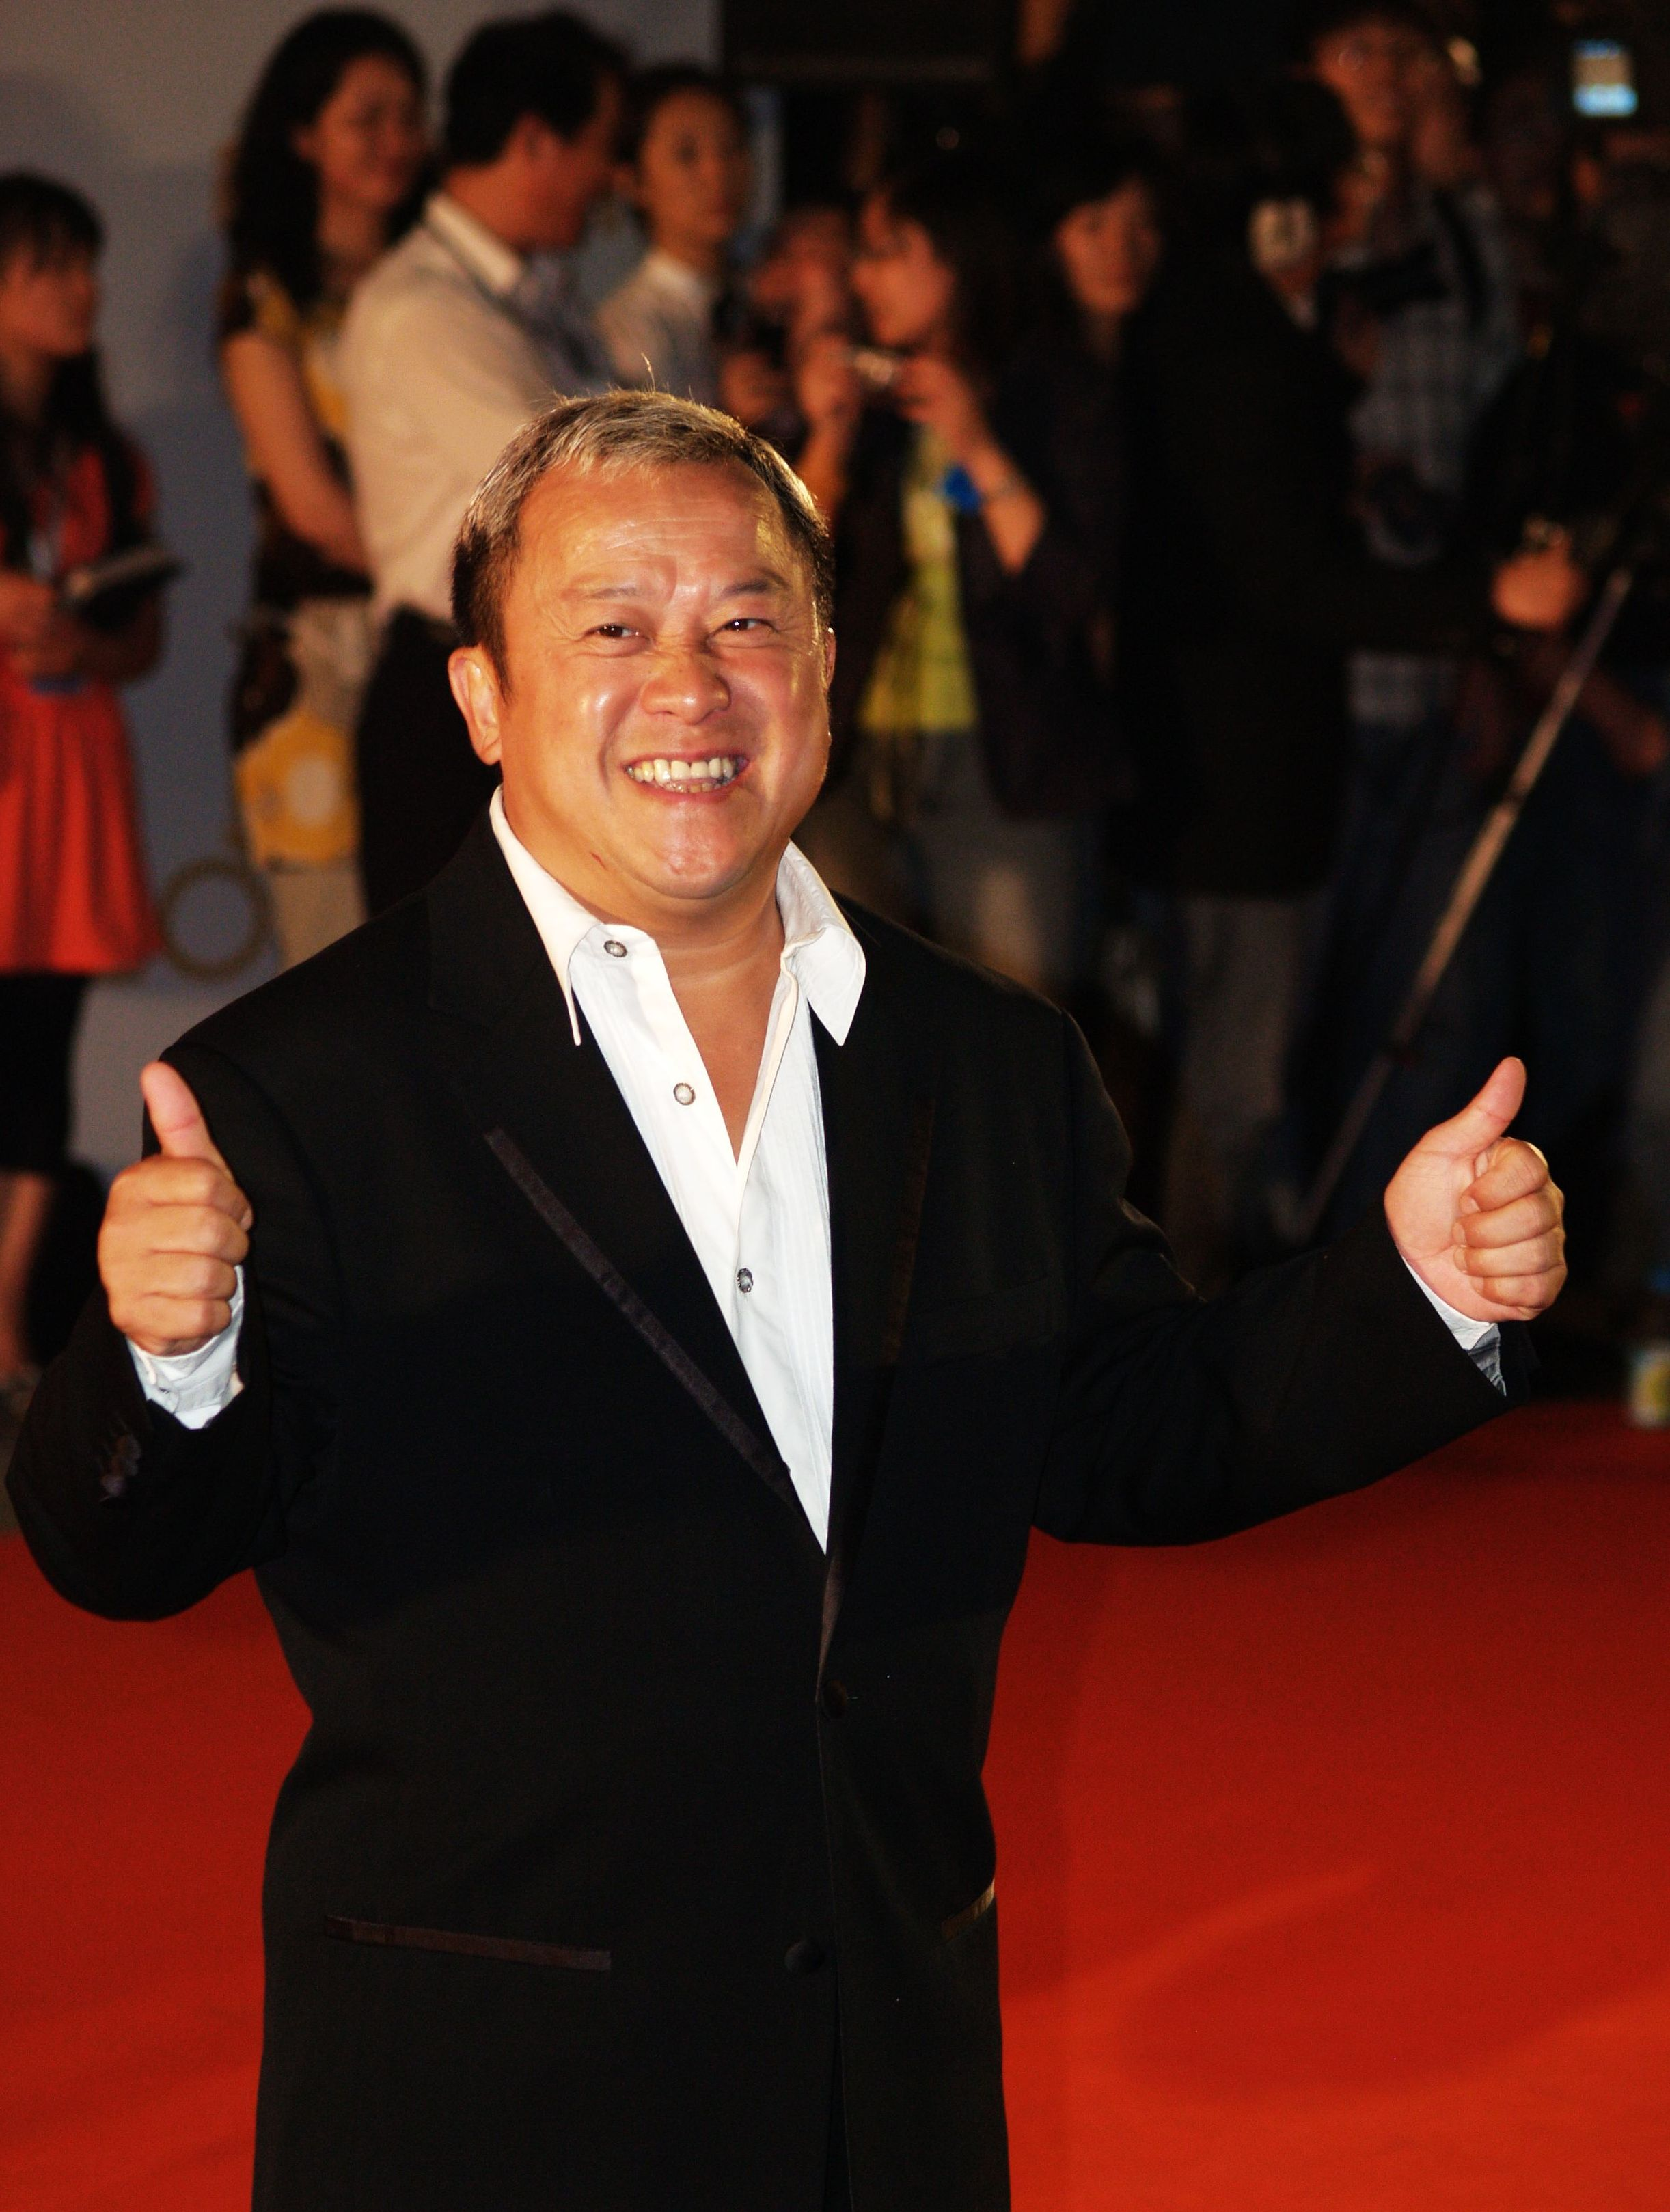 The 65-year old son of father (?) and mother(?) Eric Tsang in 2018 photo. Eric Tsang earned a  million dollar salary - leaving the net worth at 6 million in 2018